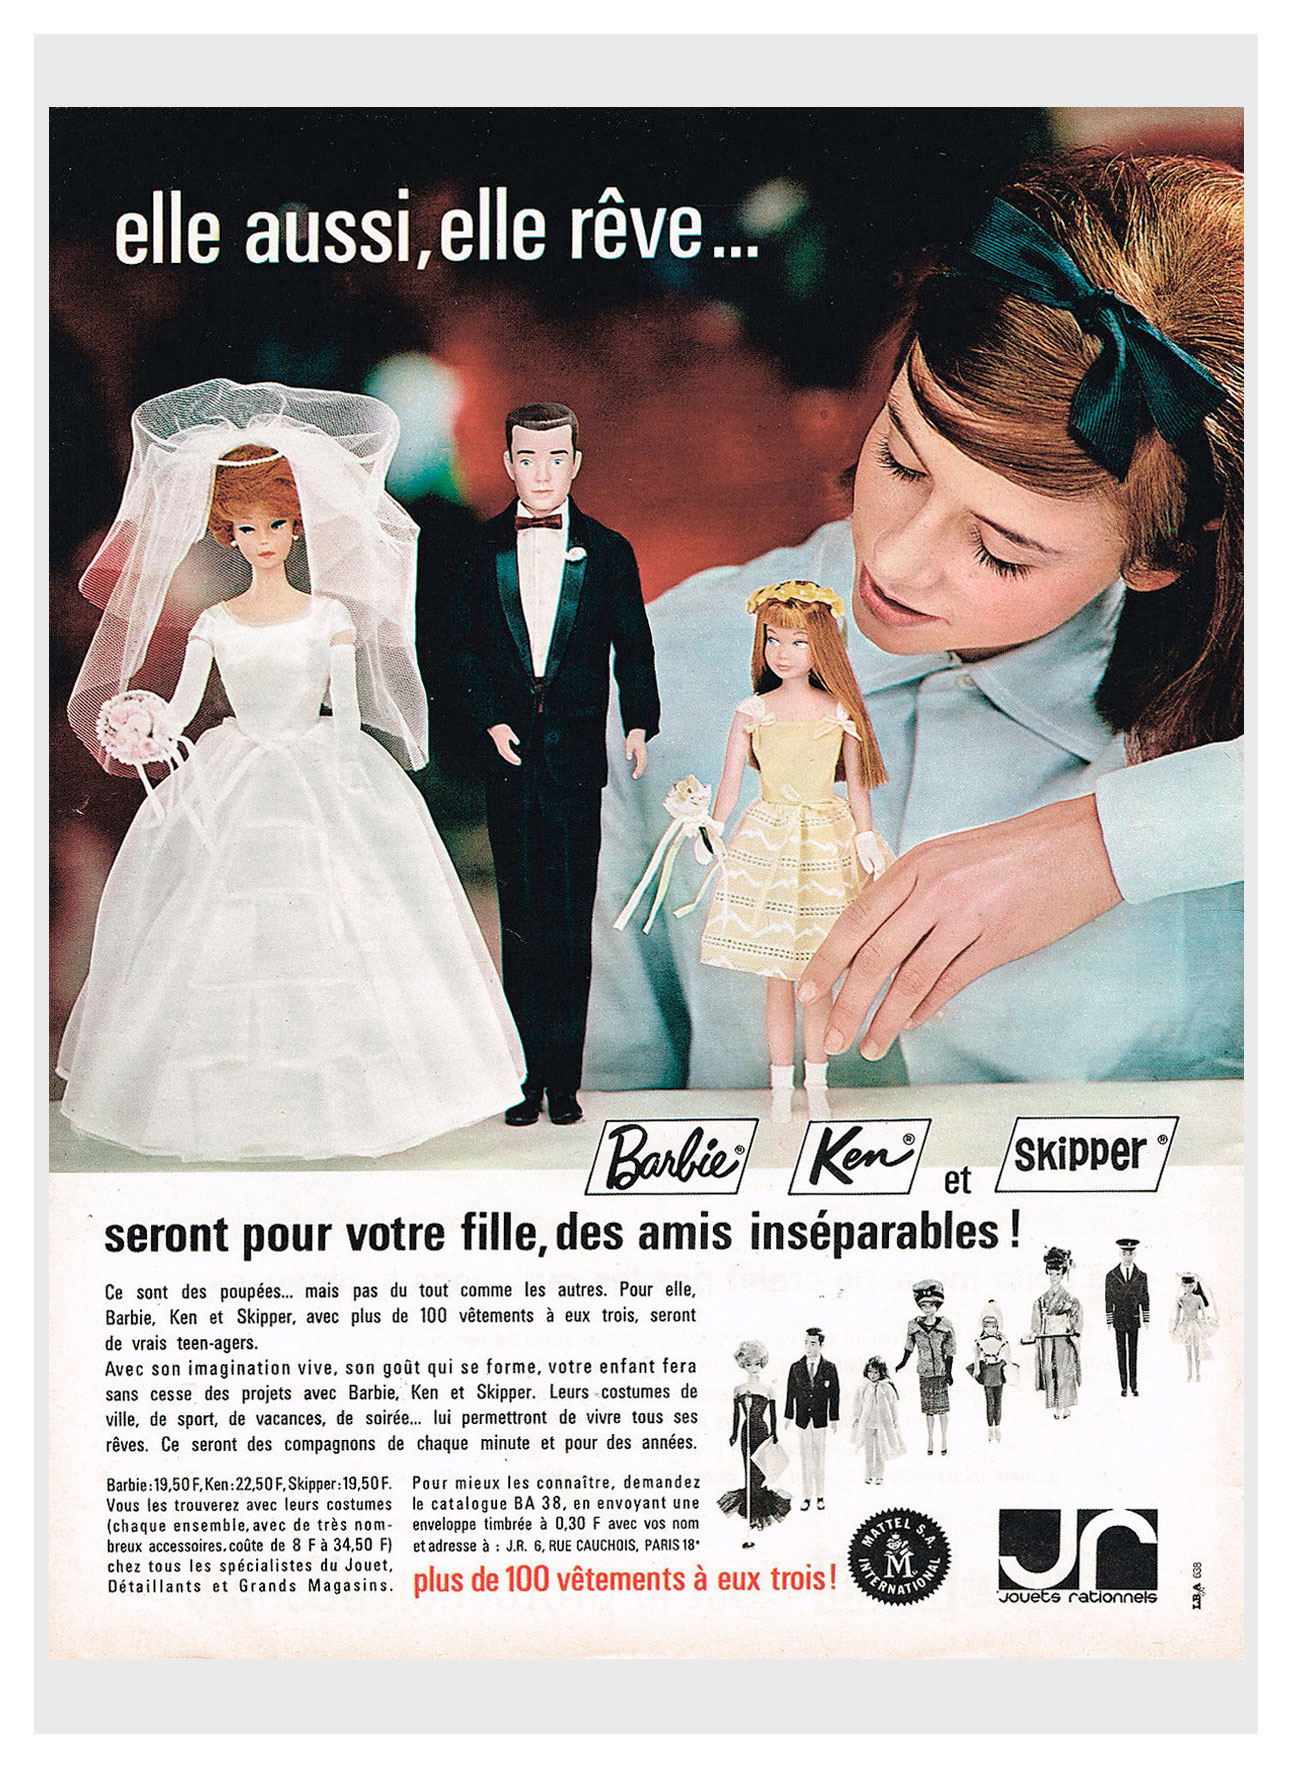 1964 French Barbie advertisement